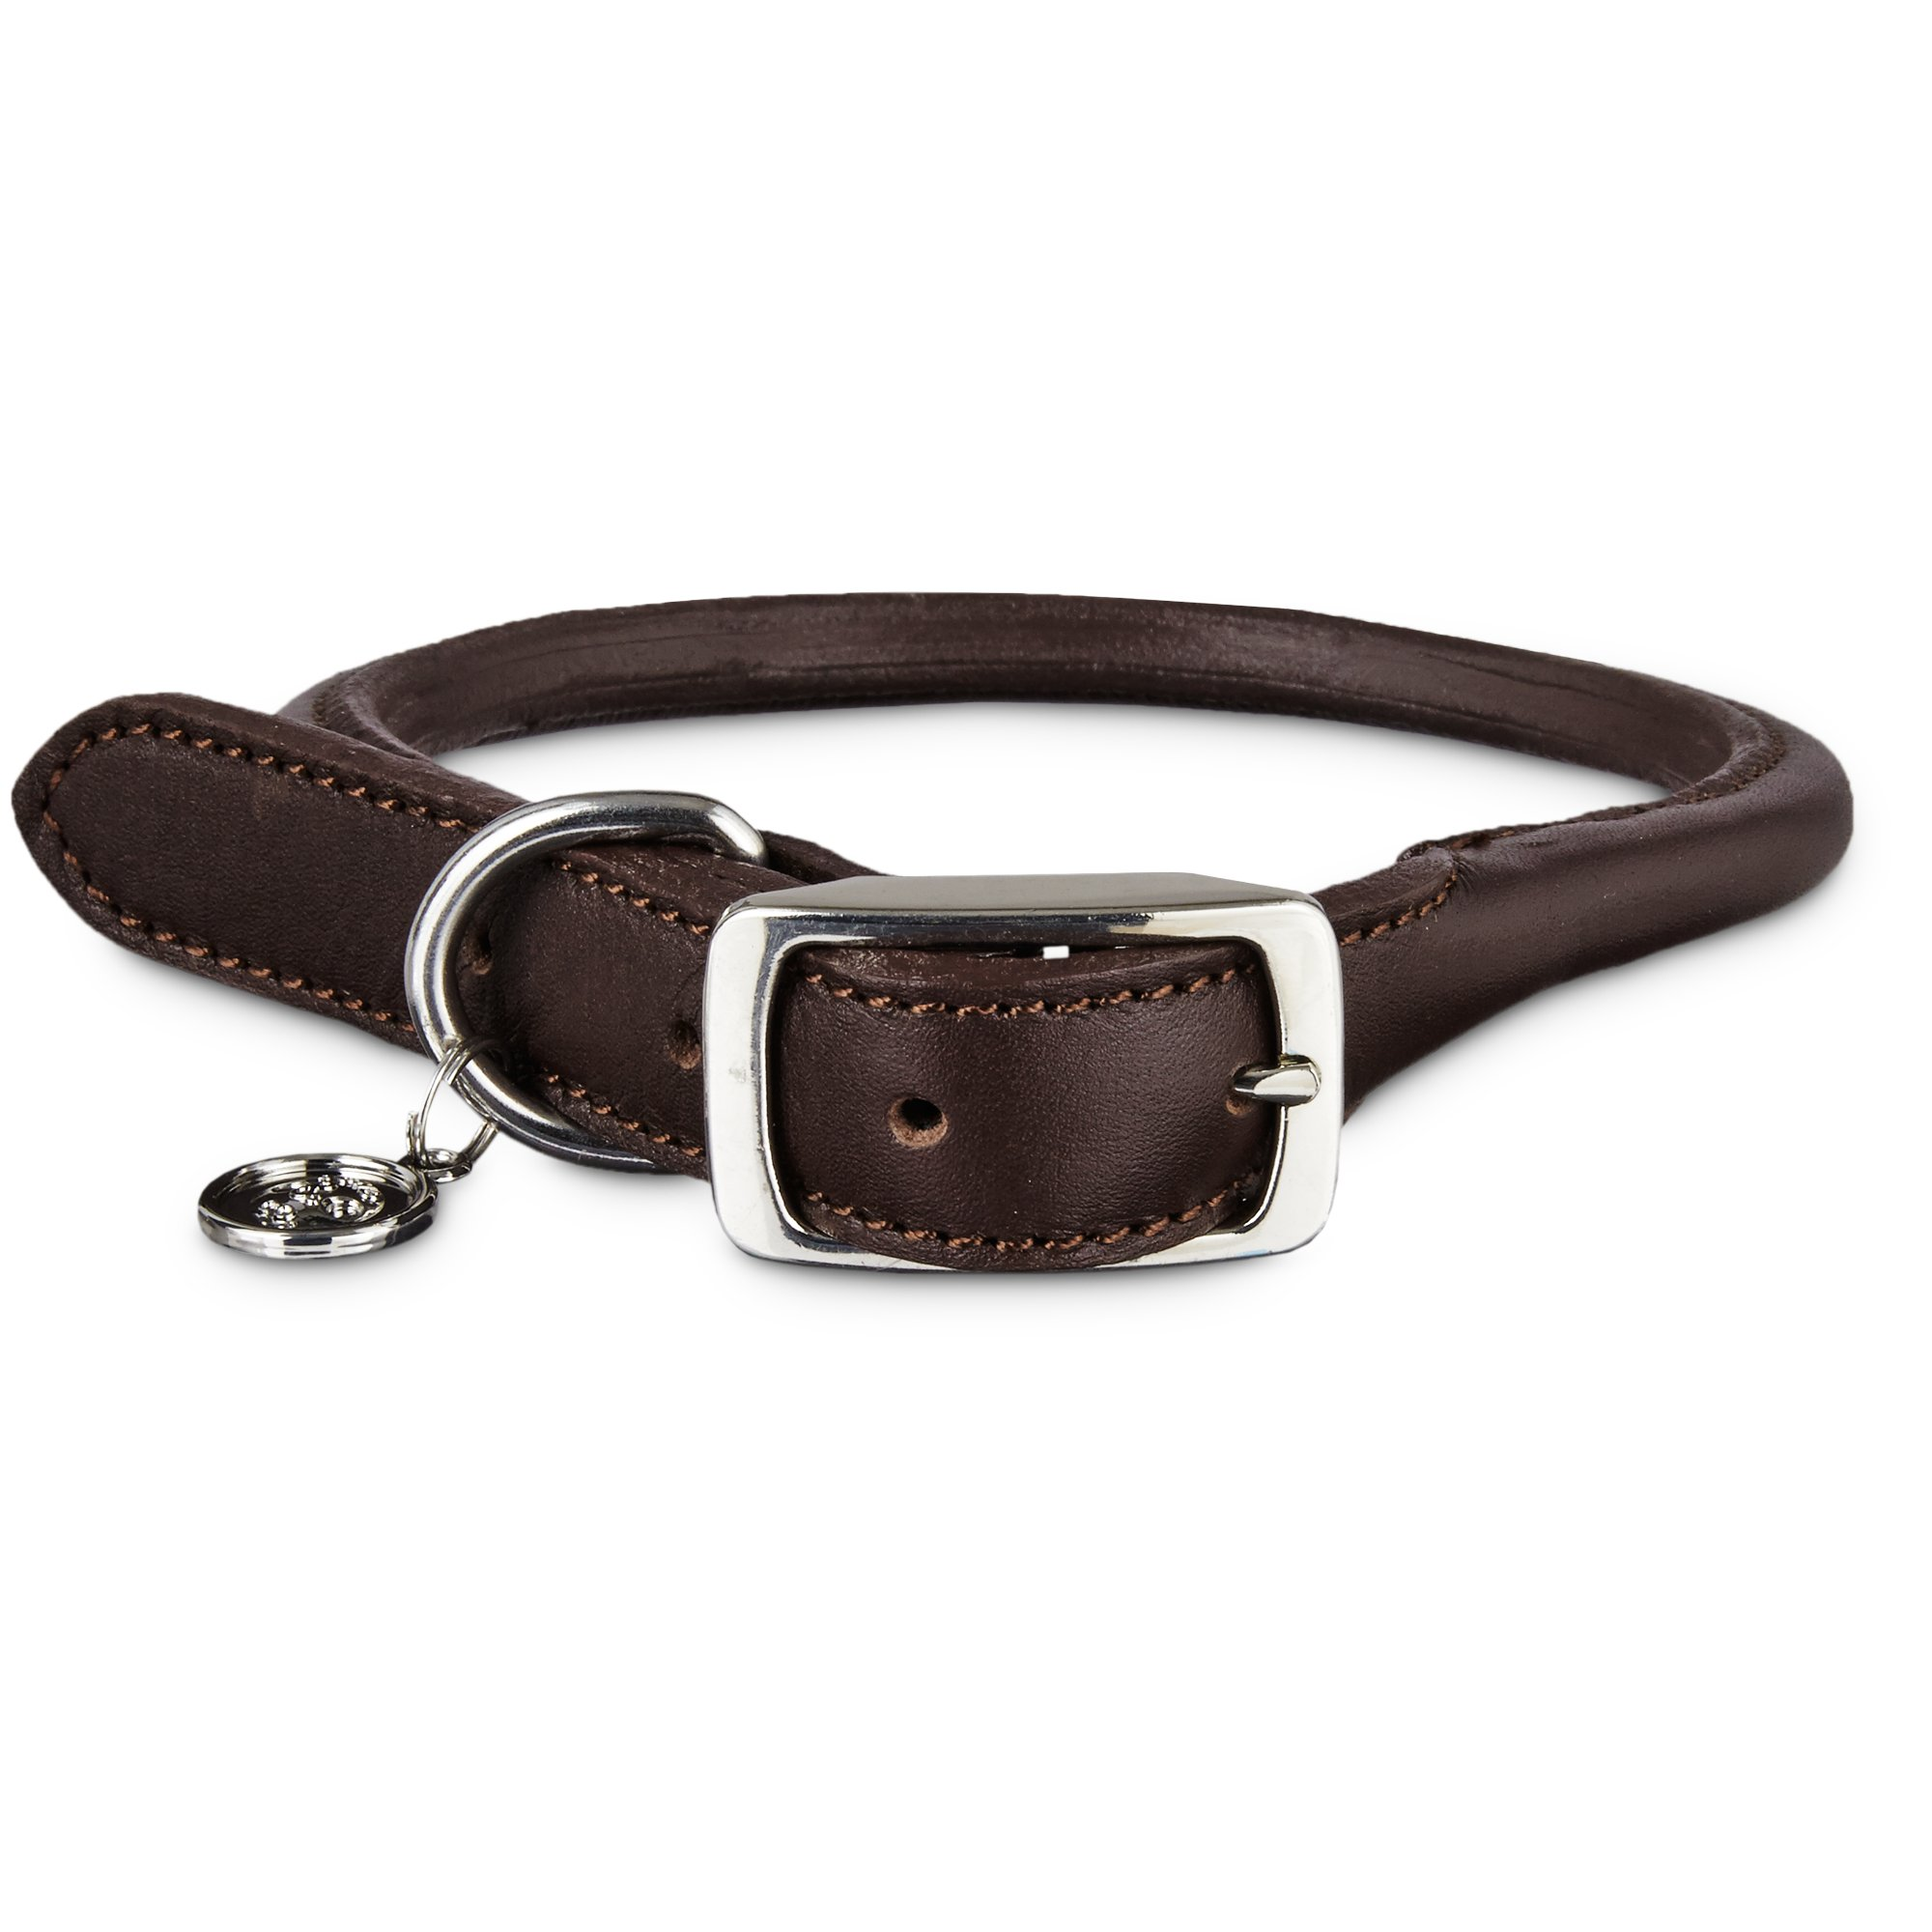 Rolled Leather Dog Collar Petco